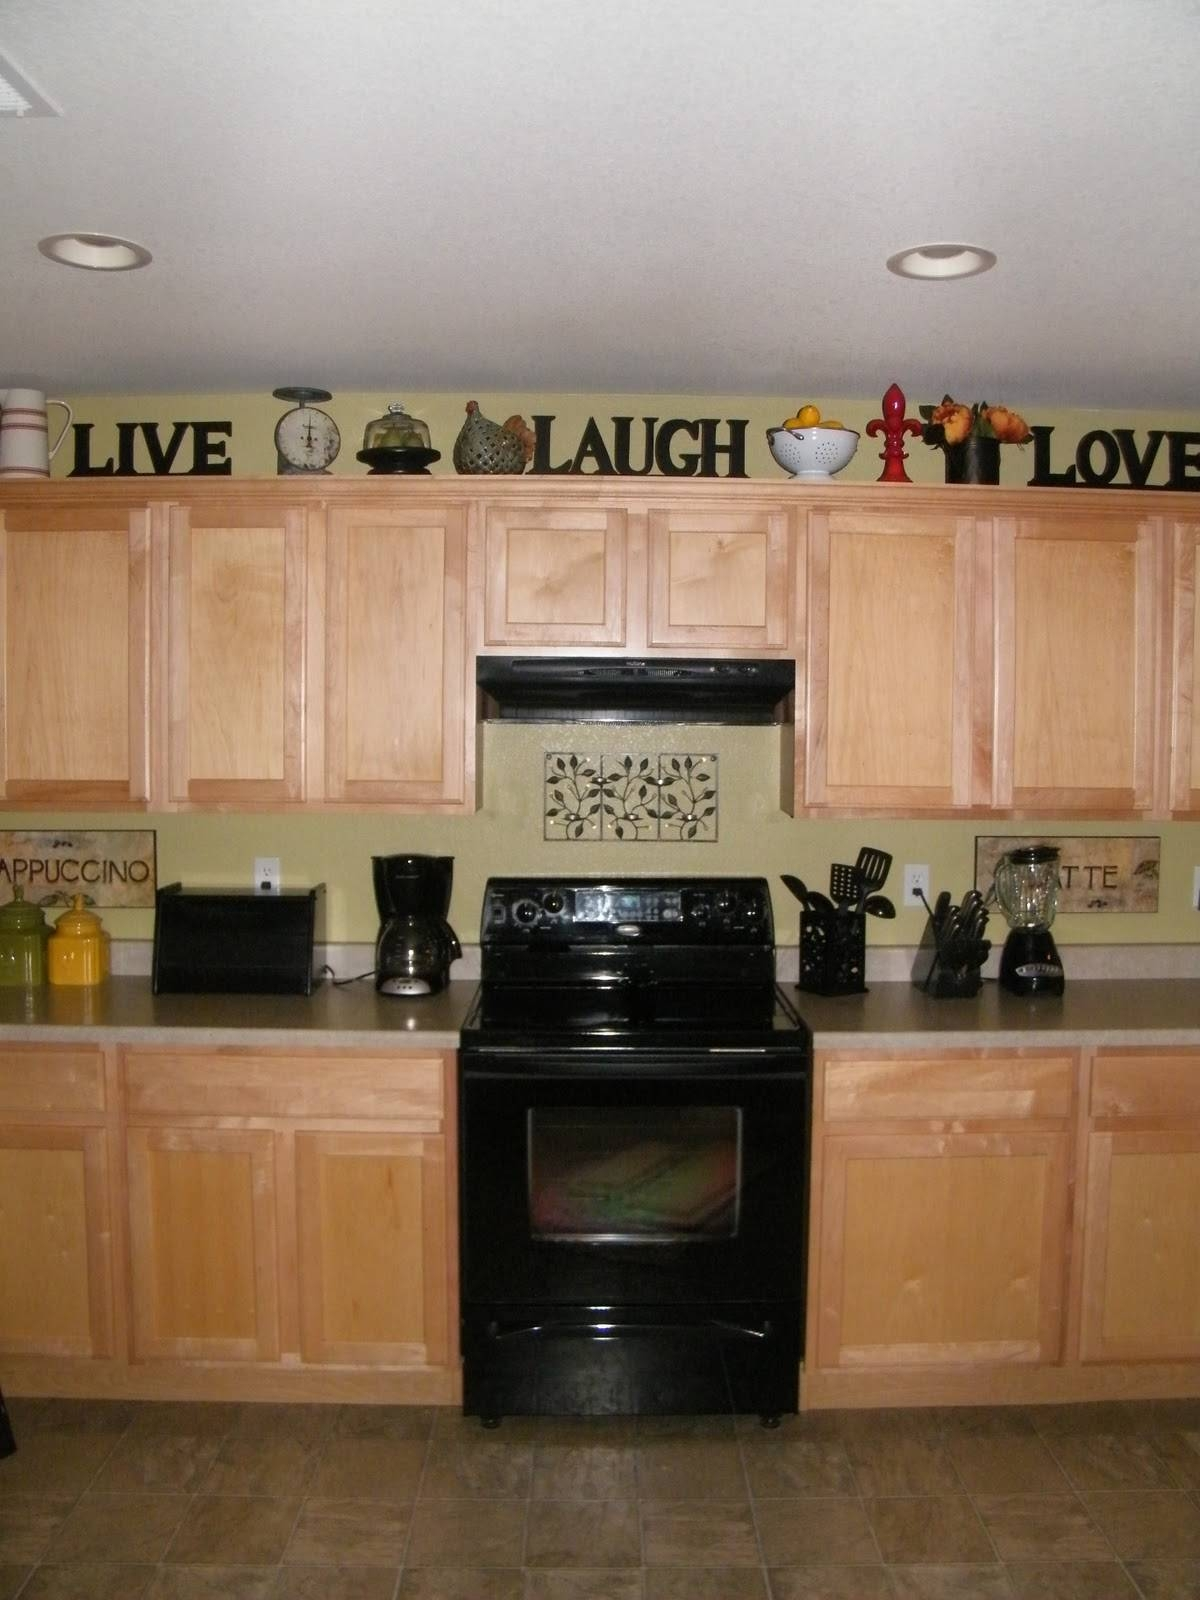 Live Laugh Love Picture Frame Walmart Live Laugh Love Wall Within Most Up To Date Live Love Laugh Metal Wall Decor (View 9 of 25)